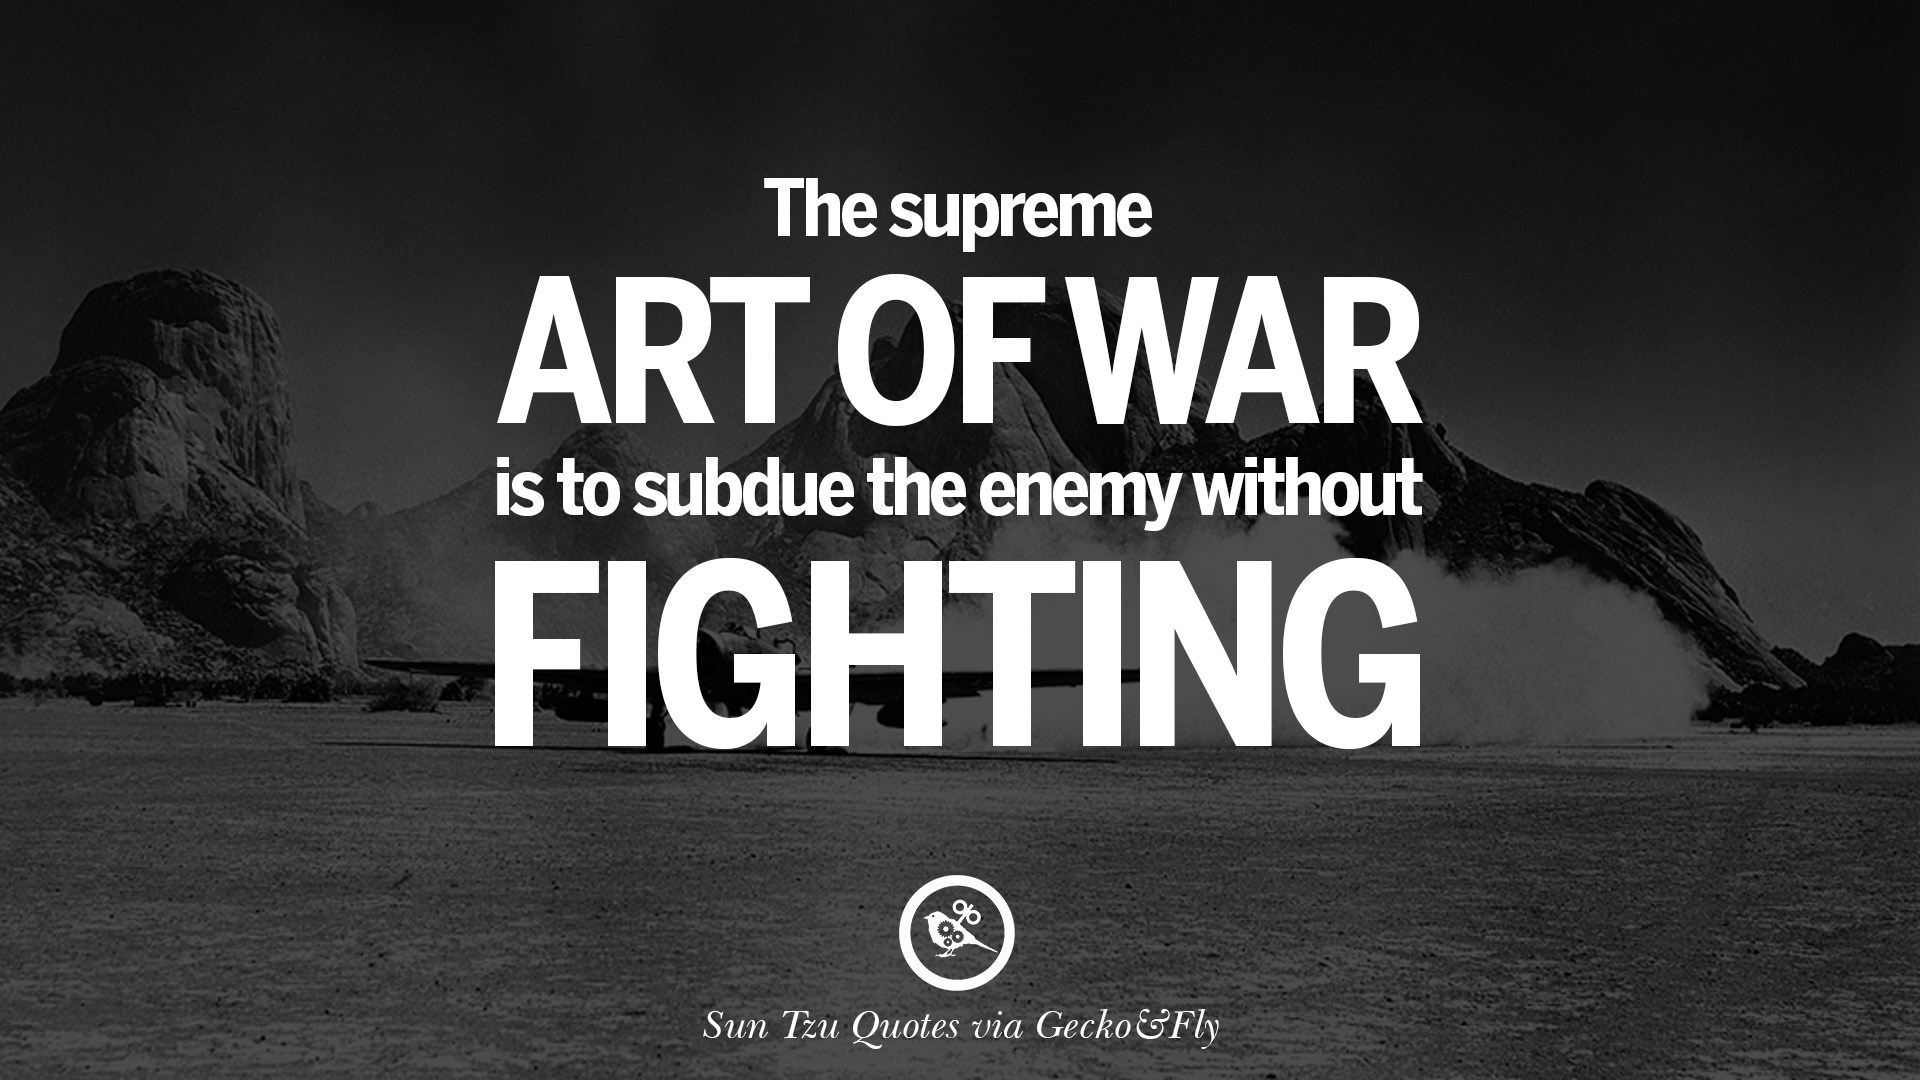 art of war submited images